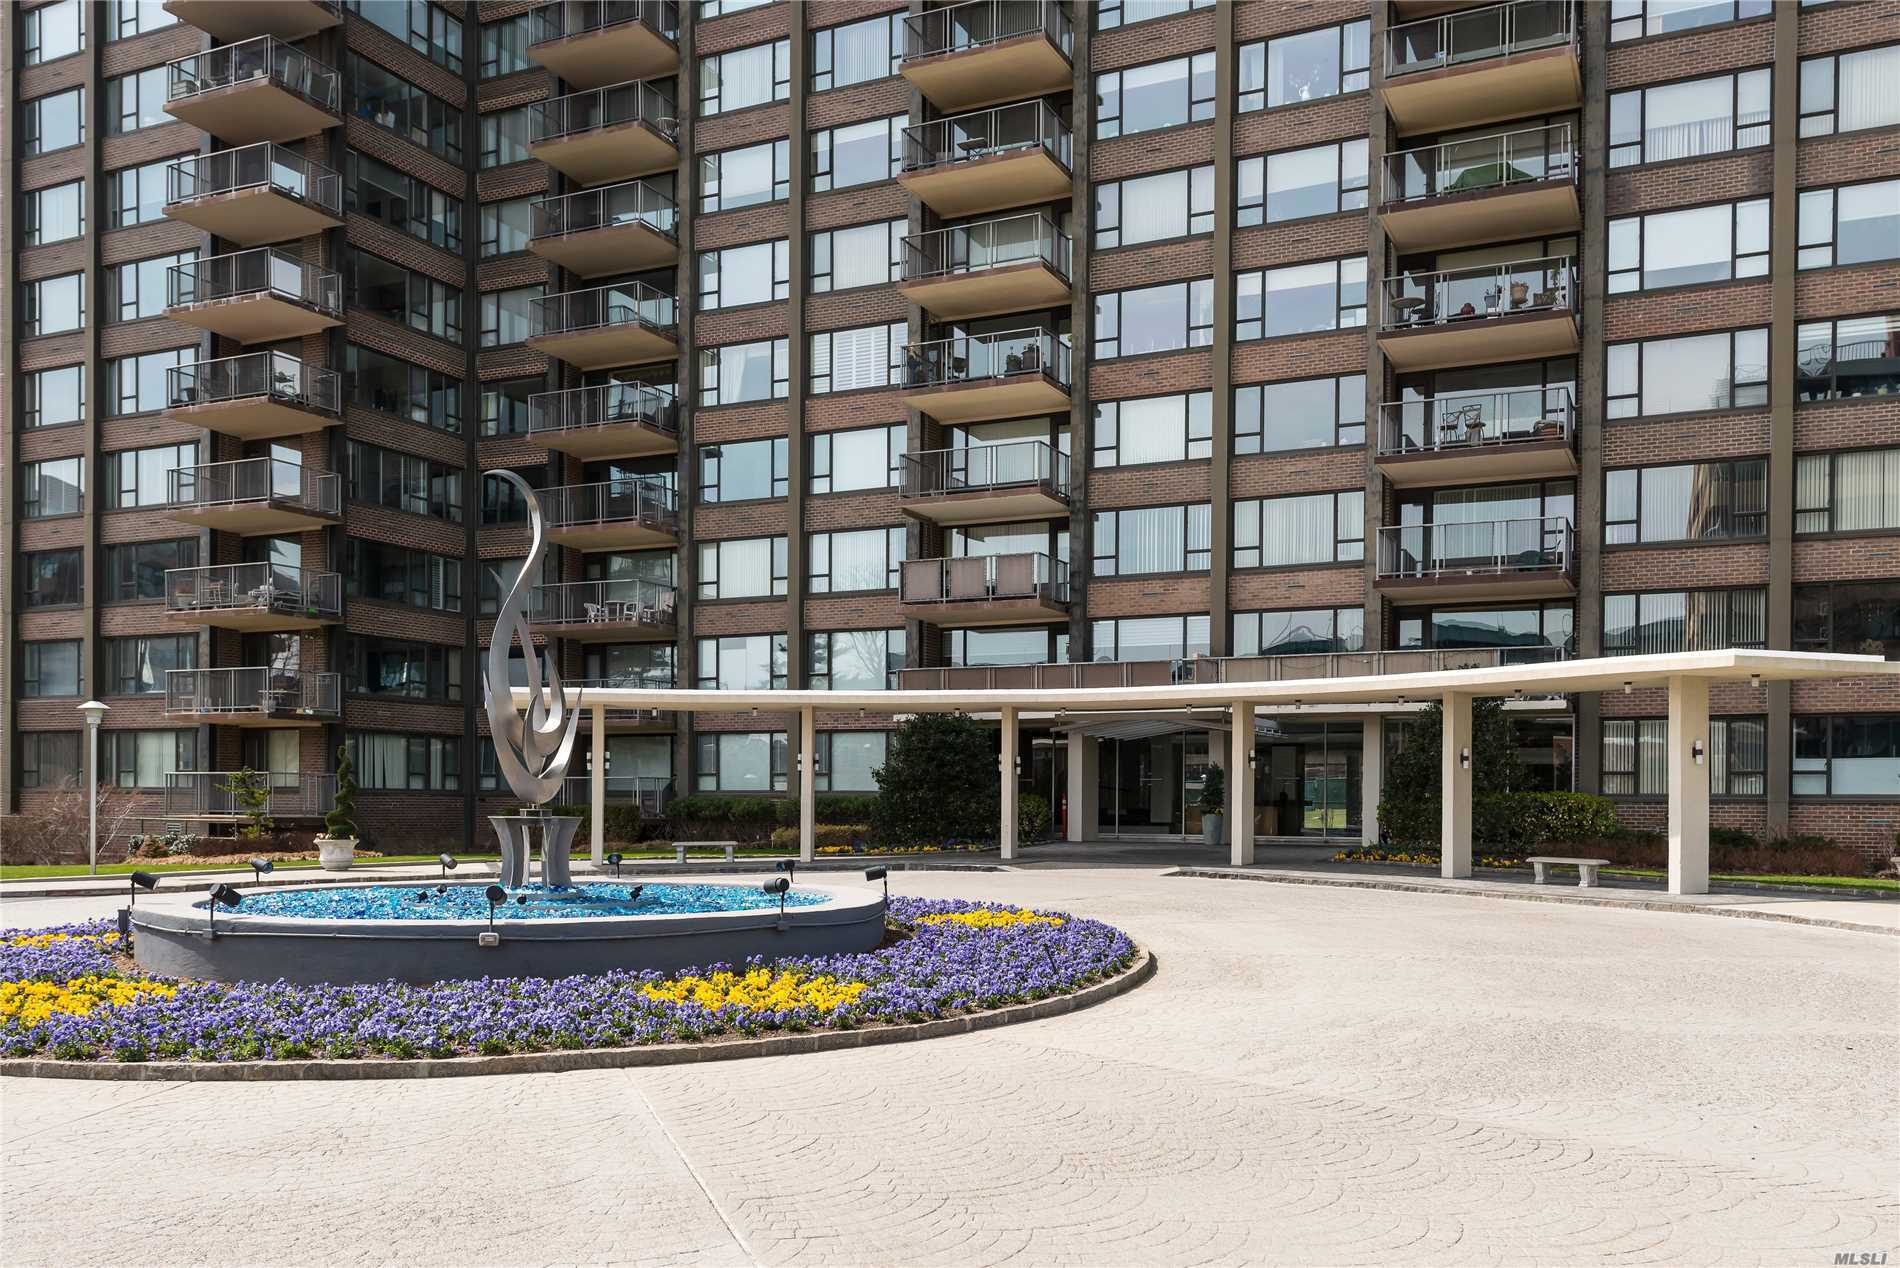 Refreshed Price! Luxurious Lifestyle! Breathtaking Bridge&Water Wrap Around Panoramic Views W/Terrace, Located In The Luxury Cryder House.Full Service Hi-Rise, 24 Hr Security & Doorman, Gated Community, Gym, Outdoor Heated Pool, Library, Club Rm, Laundry On Every Floor.Entry Foyer, Eik, Dinning & Living Rm, Master En Suite, 2 Additional Large RMs, Updated Main Bath, Lots Of Closets.Parquet Flrs.Sun Rise And Romantic Sunset!Express Bus To Nyc On Corner And Local Bus To Flushing.Utilities Inc. In Maintenance.